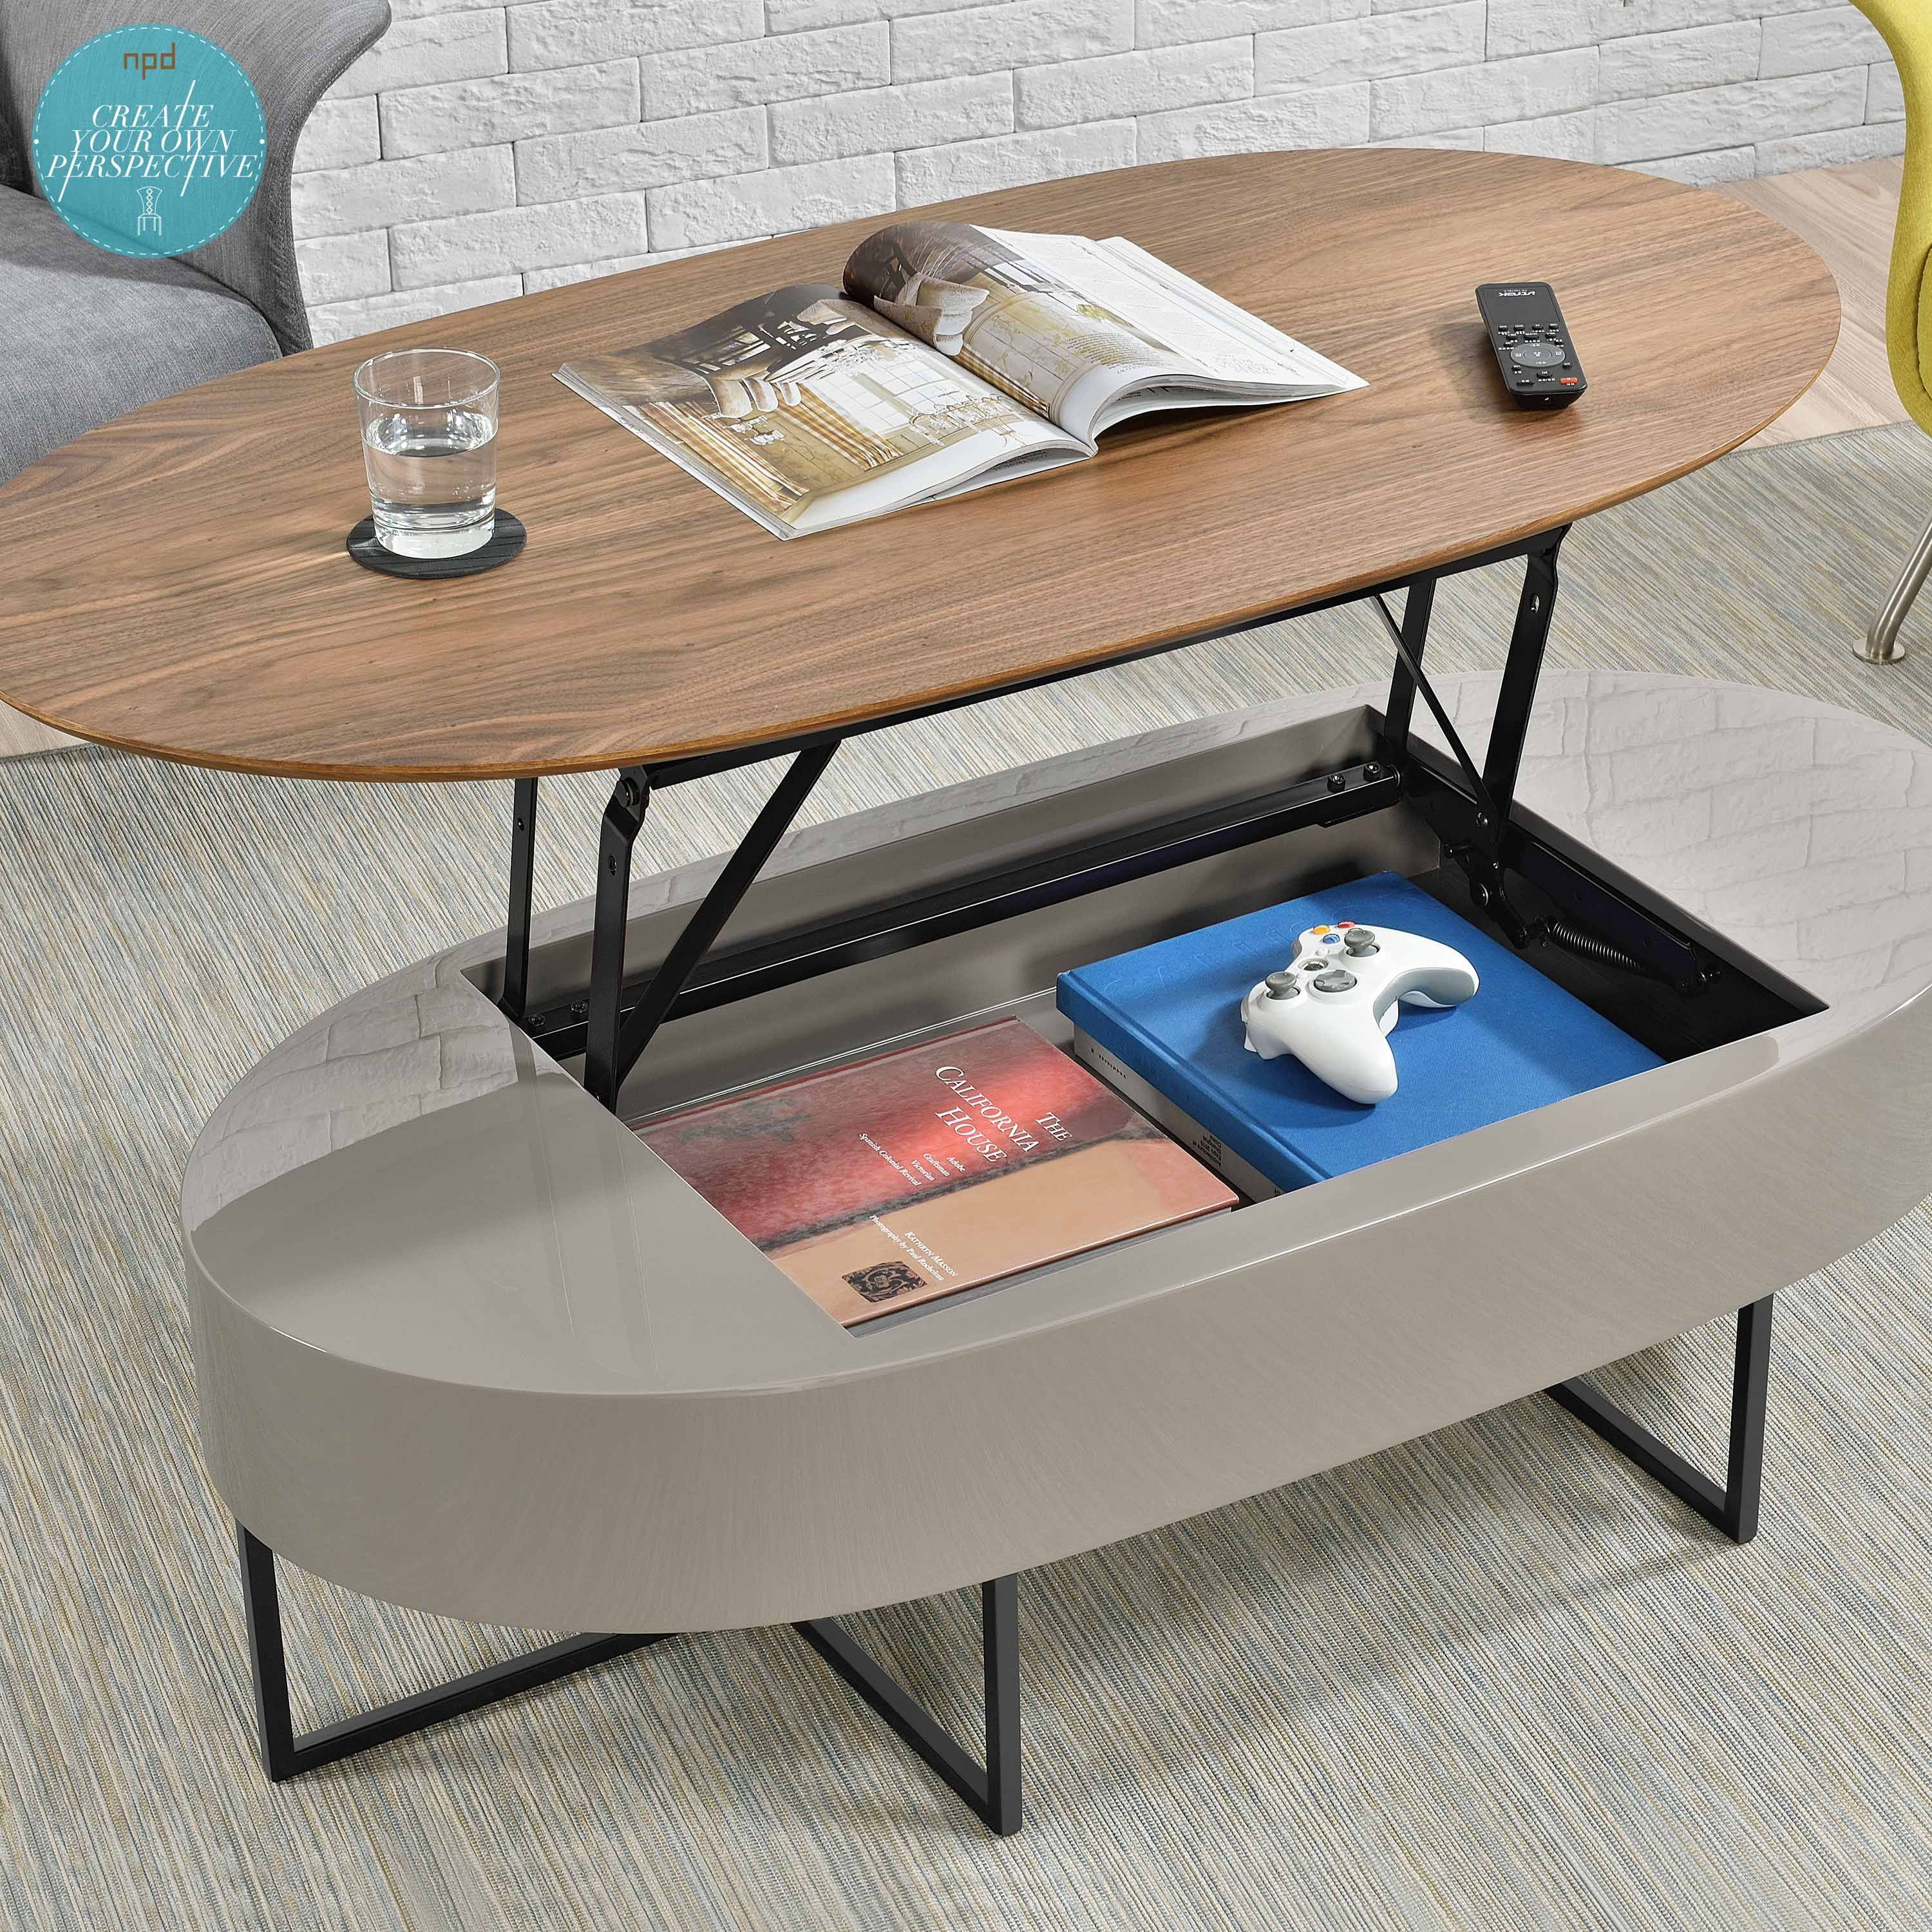 Consider This Multi Functional Oval Lift Top Table If You Re Moving To A Smaller Space Or Planning To Spruce Up Your Living Room Decor The Hansel Coffee Table